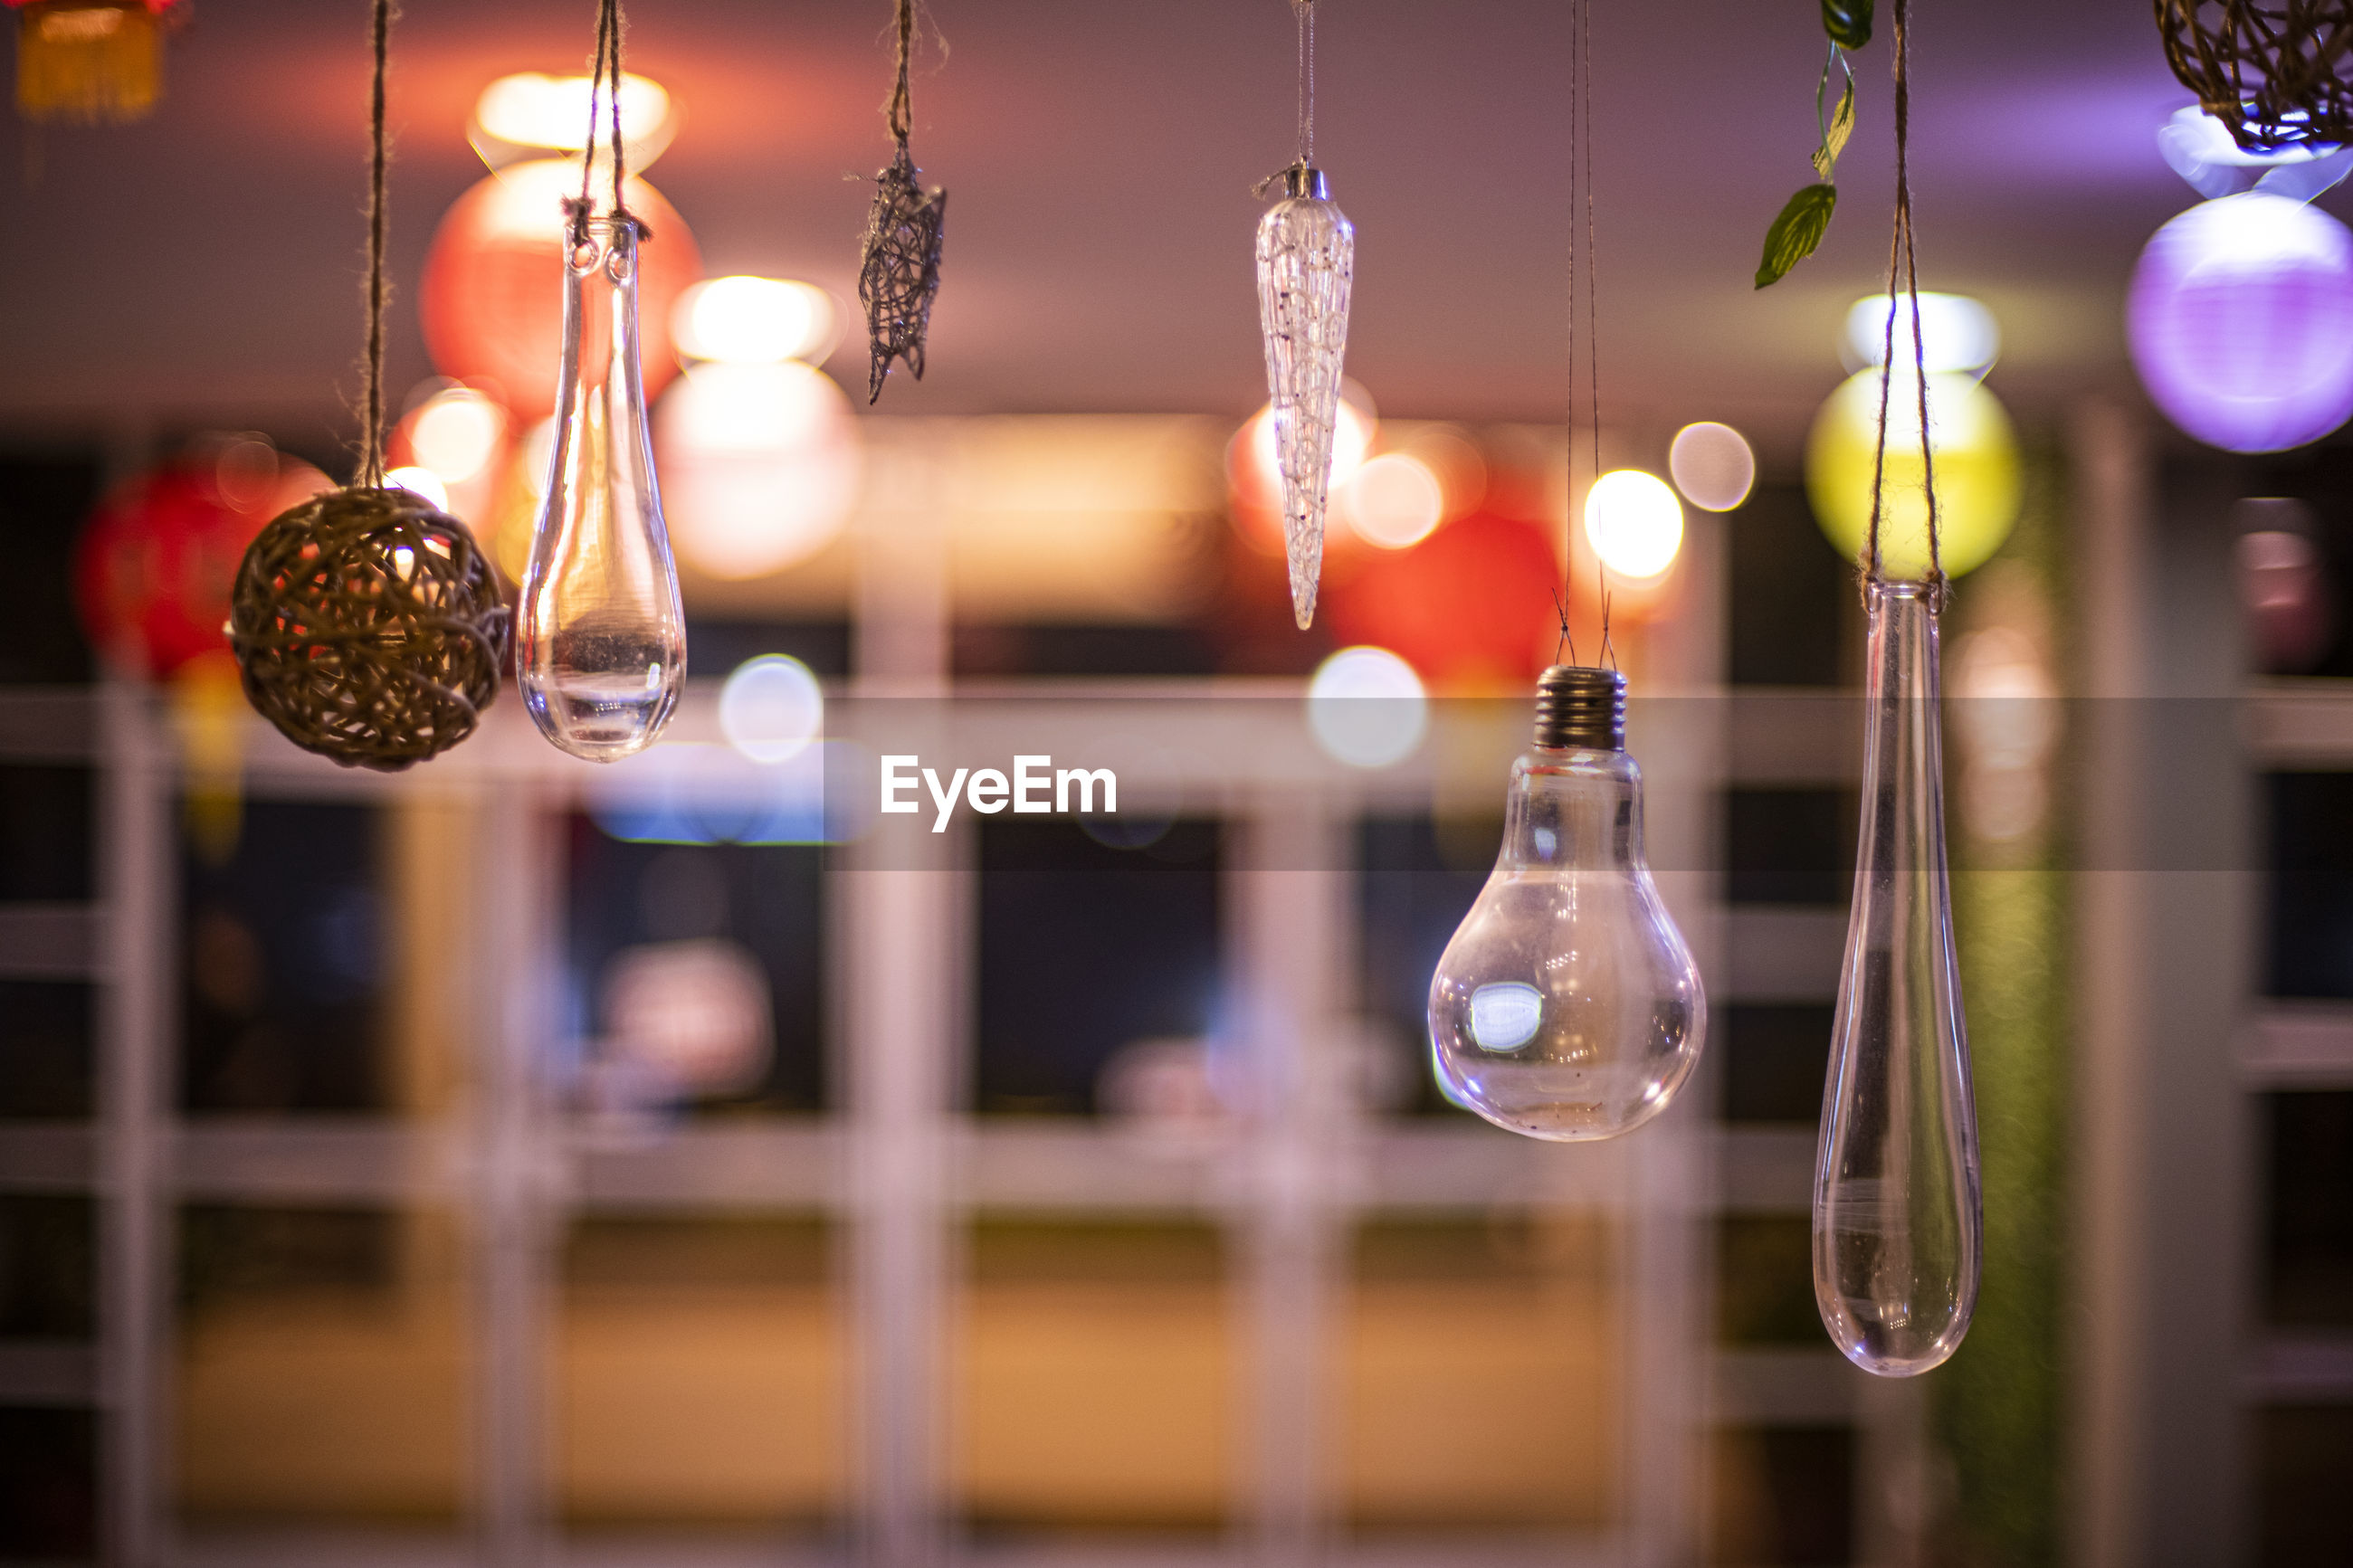 Close-up of light bulbs hanging